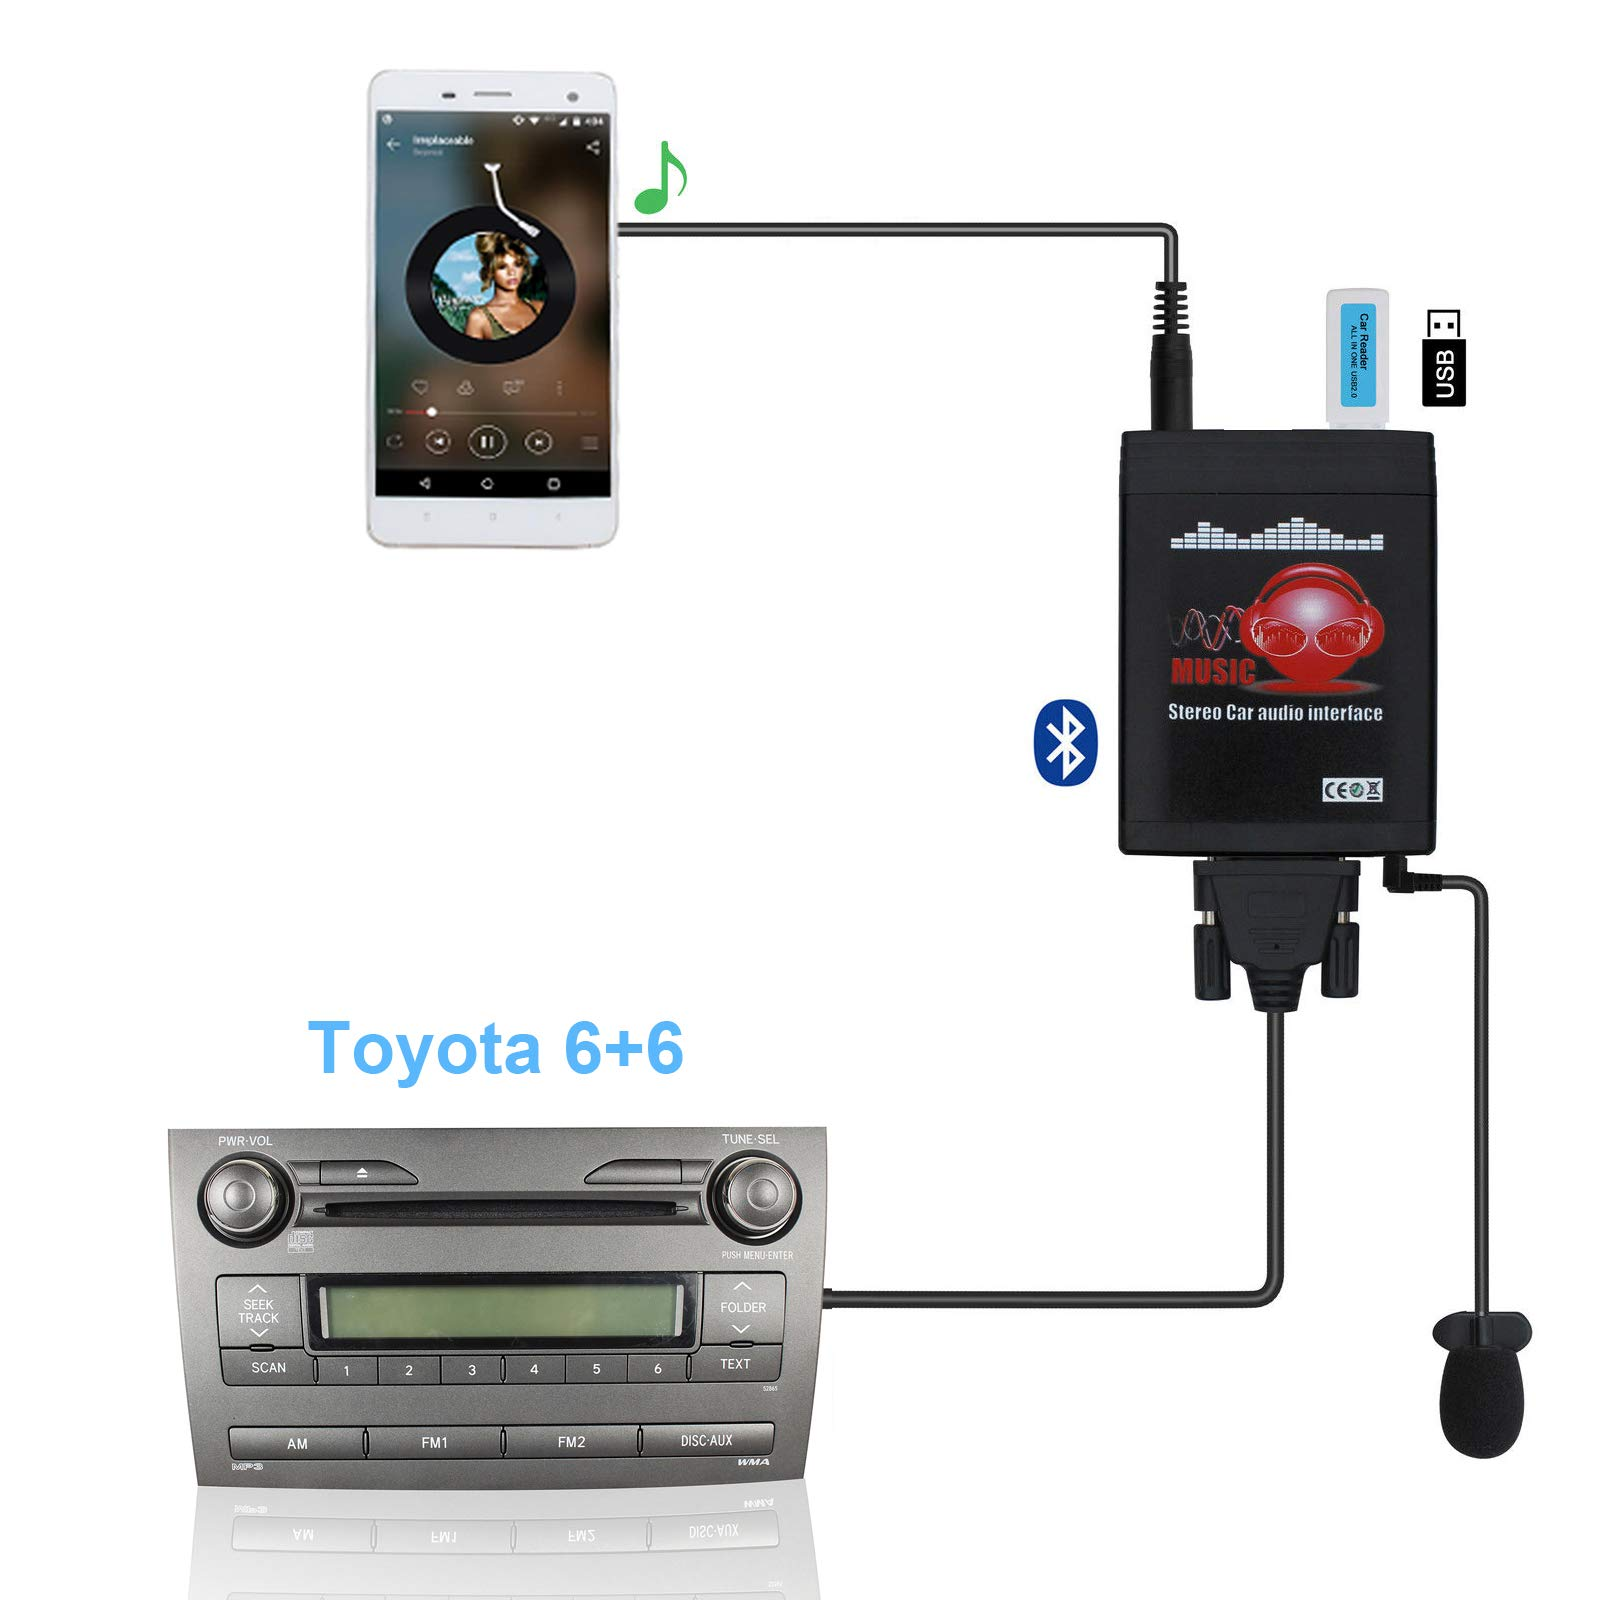 Bluetooth Car Adapter, Yomikoo Car MP3 USB/AUX 3.5mm Stereo Wireless Music Receiver Wireless Hands Free Auto Bluetooth Adapter for Toyota (6+6) Pin Camry Tacoma Corolla Tundra 4runner RAV4 by Yomikoo